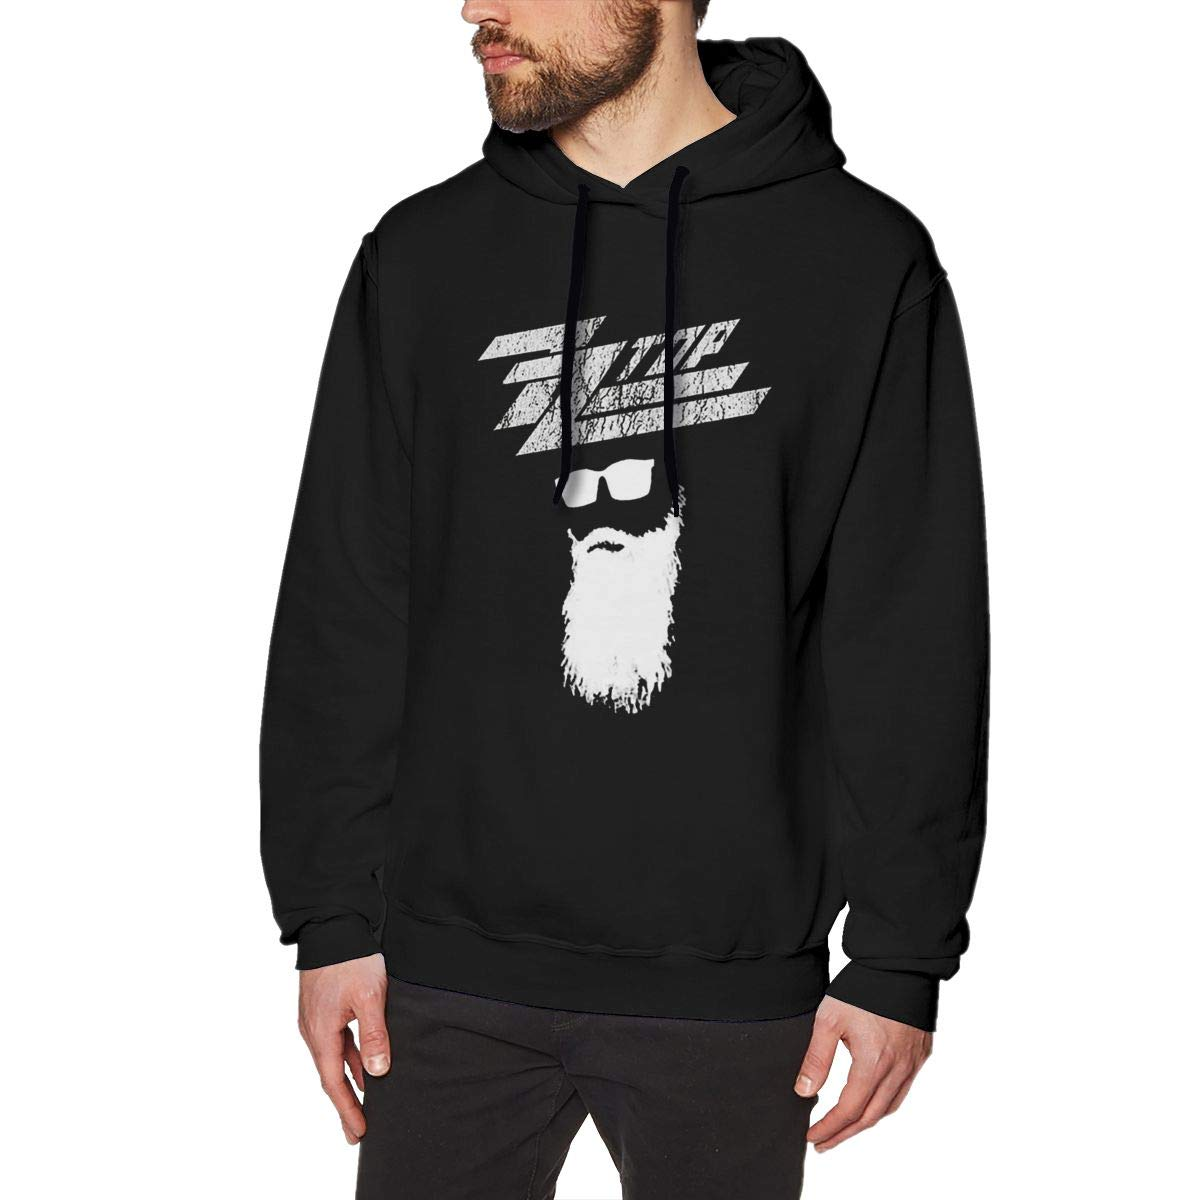 Whiteandnavy Cotton Mens ZZ Top Rock Band Logo Sweatshirts Black with Mens Hoodies